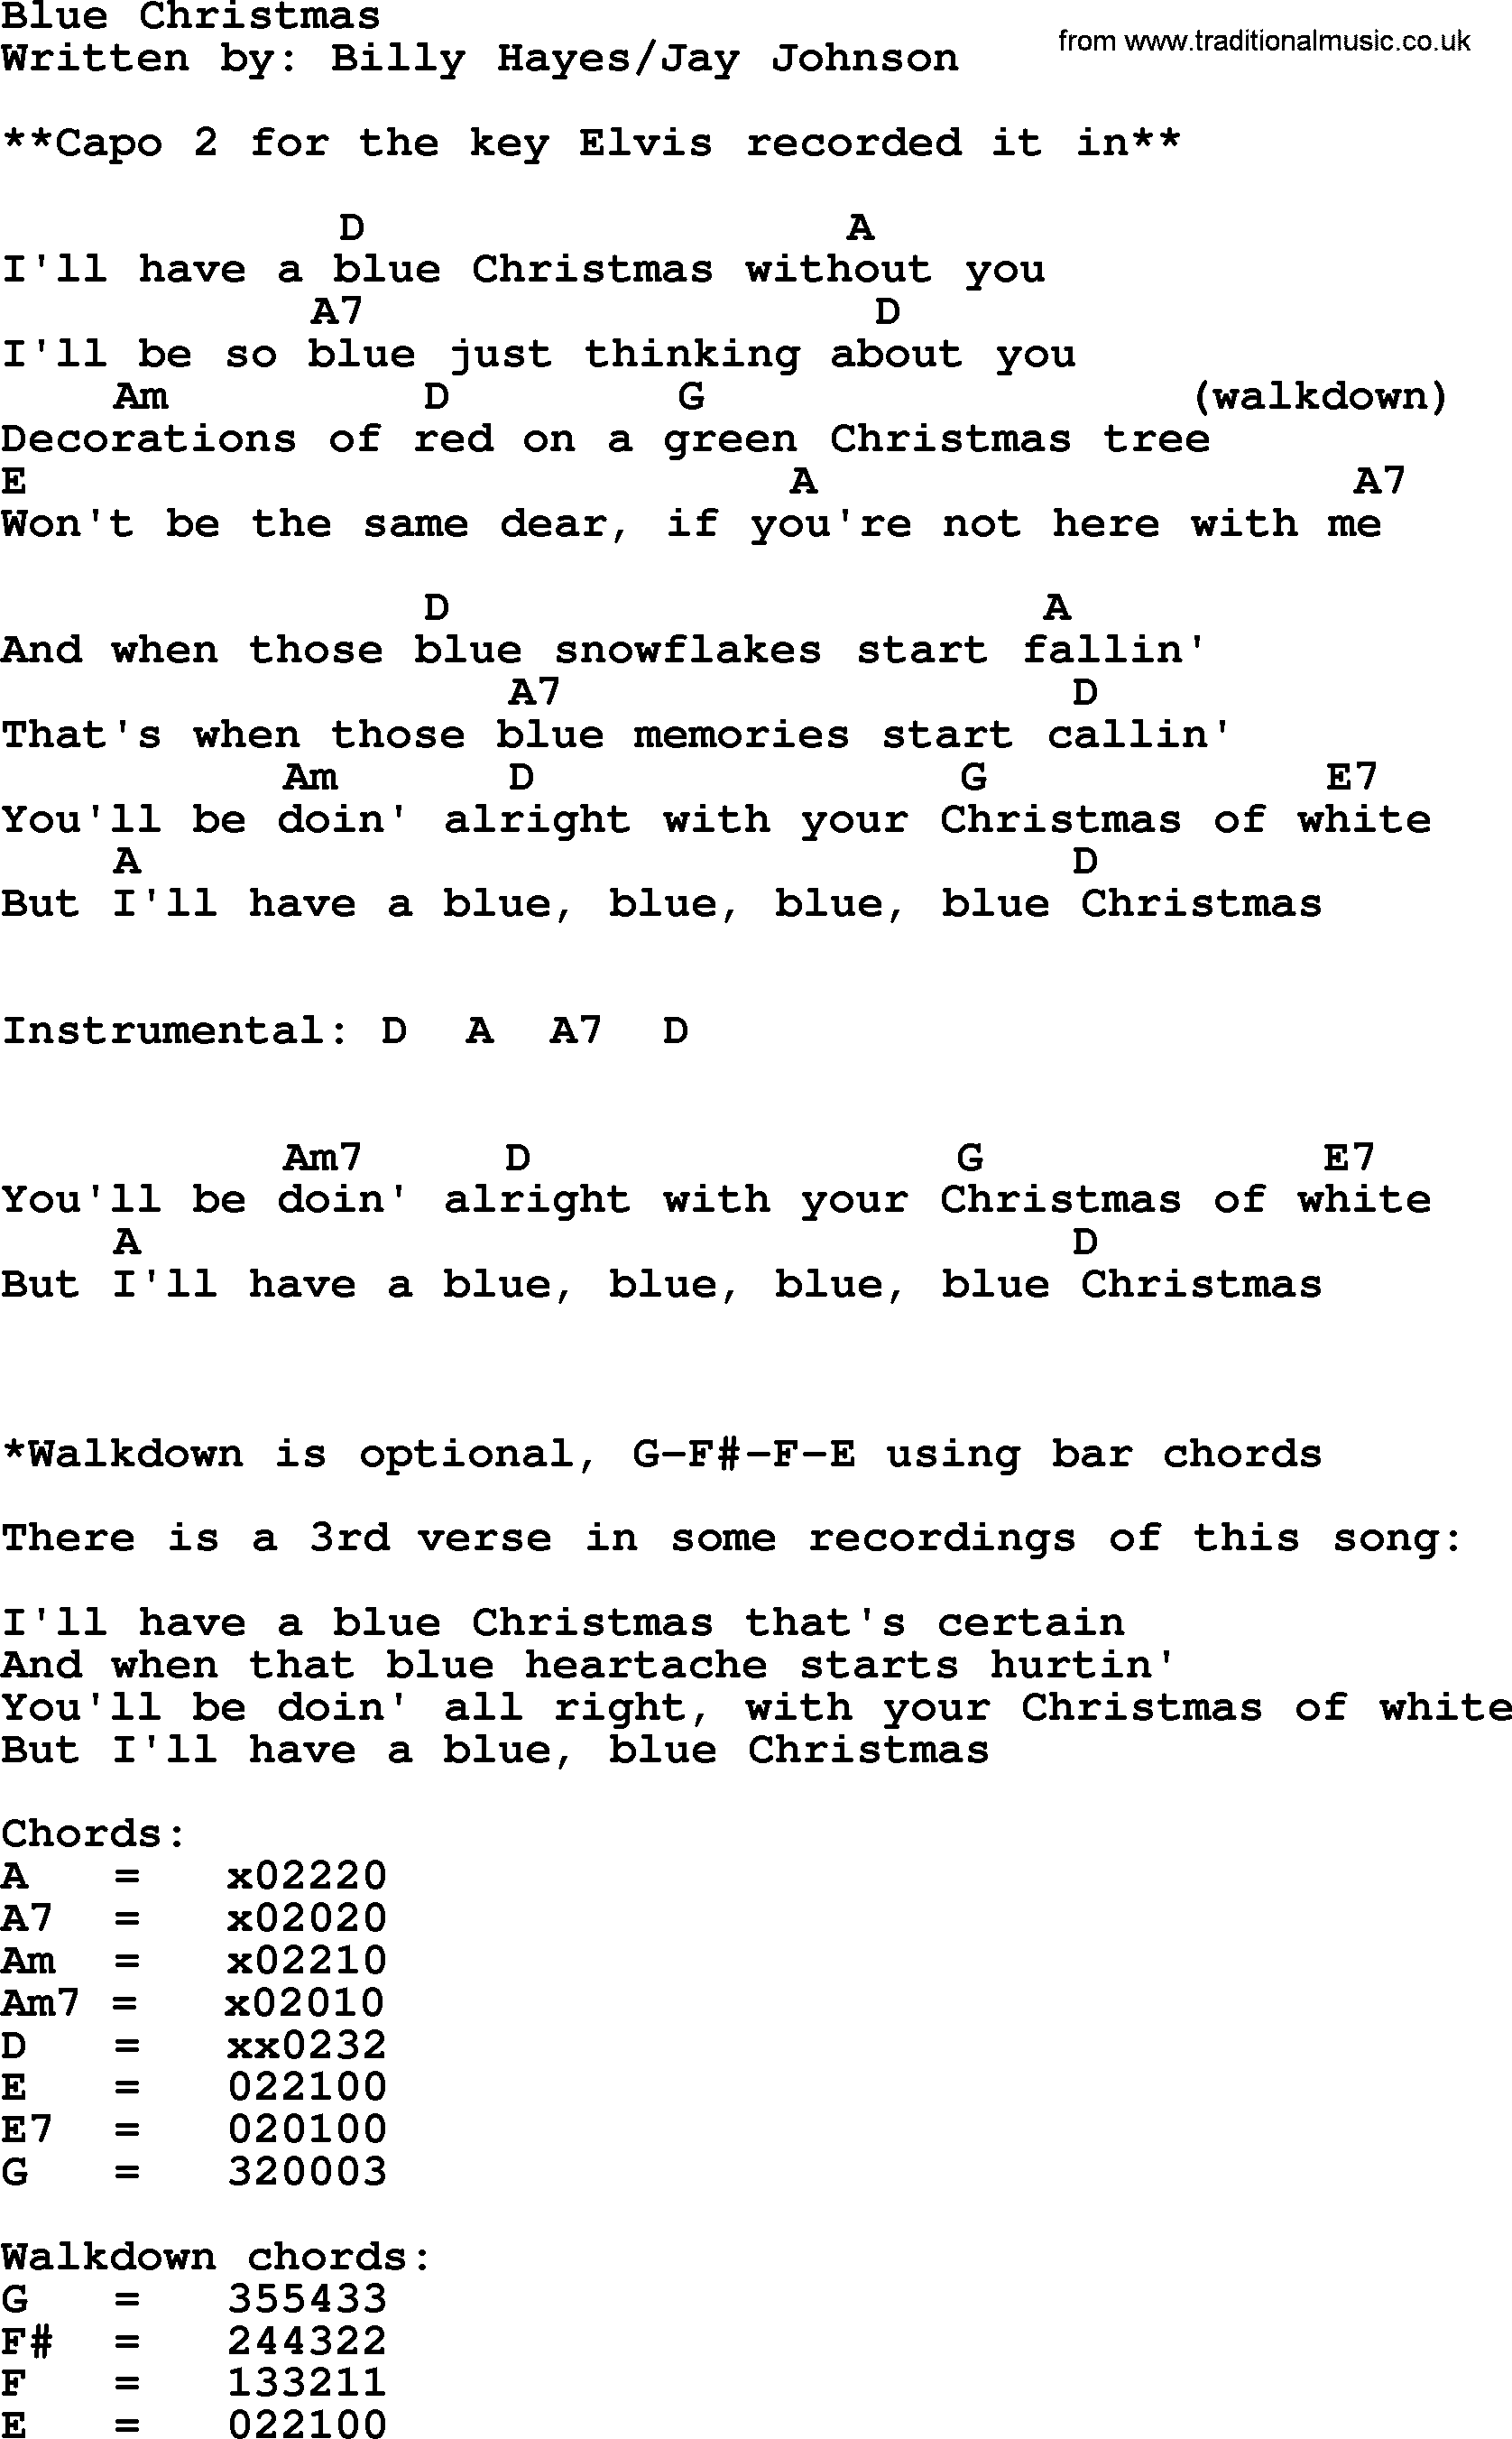 elvis presley song blue christmas lyrics and chords - Blue Christmas By Elvis Presley